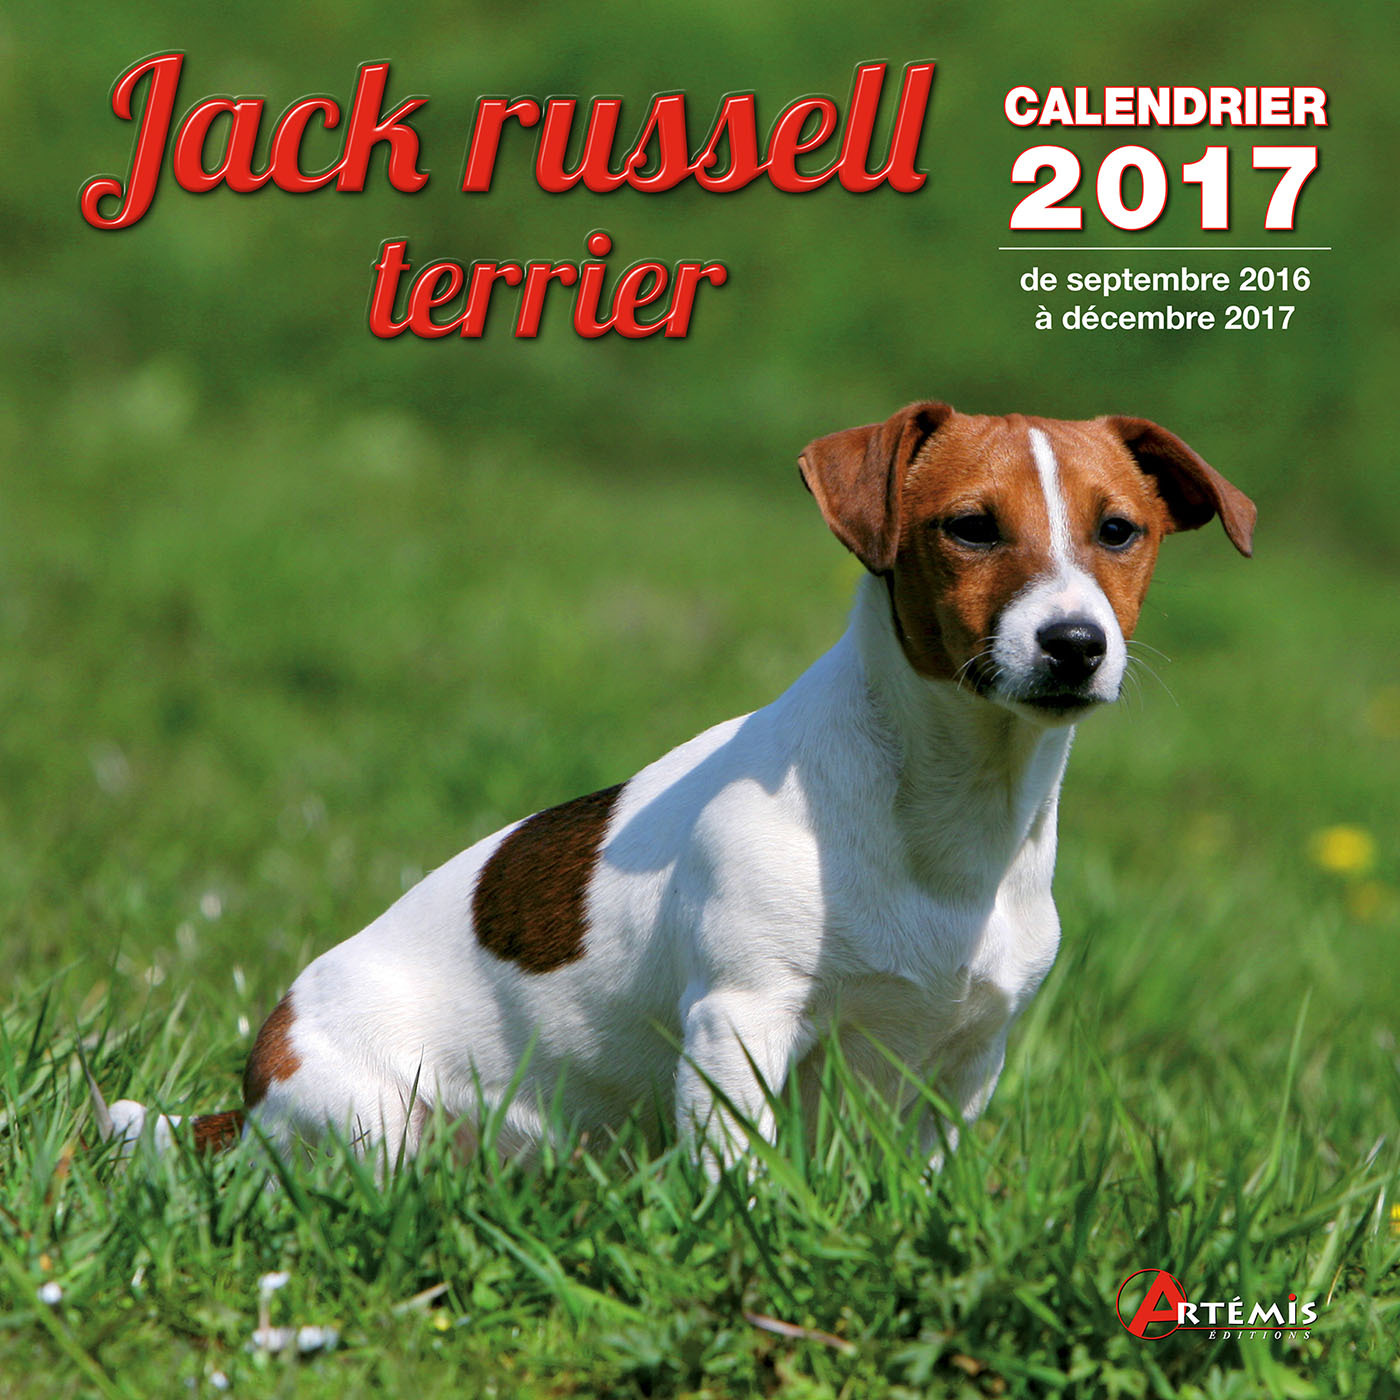 CALENDRIER JACK RUSSELL TERRIER 2017